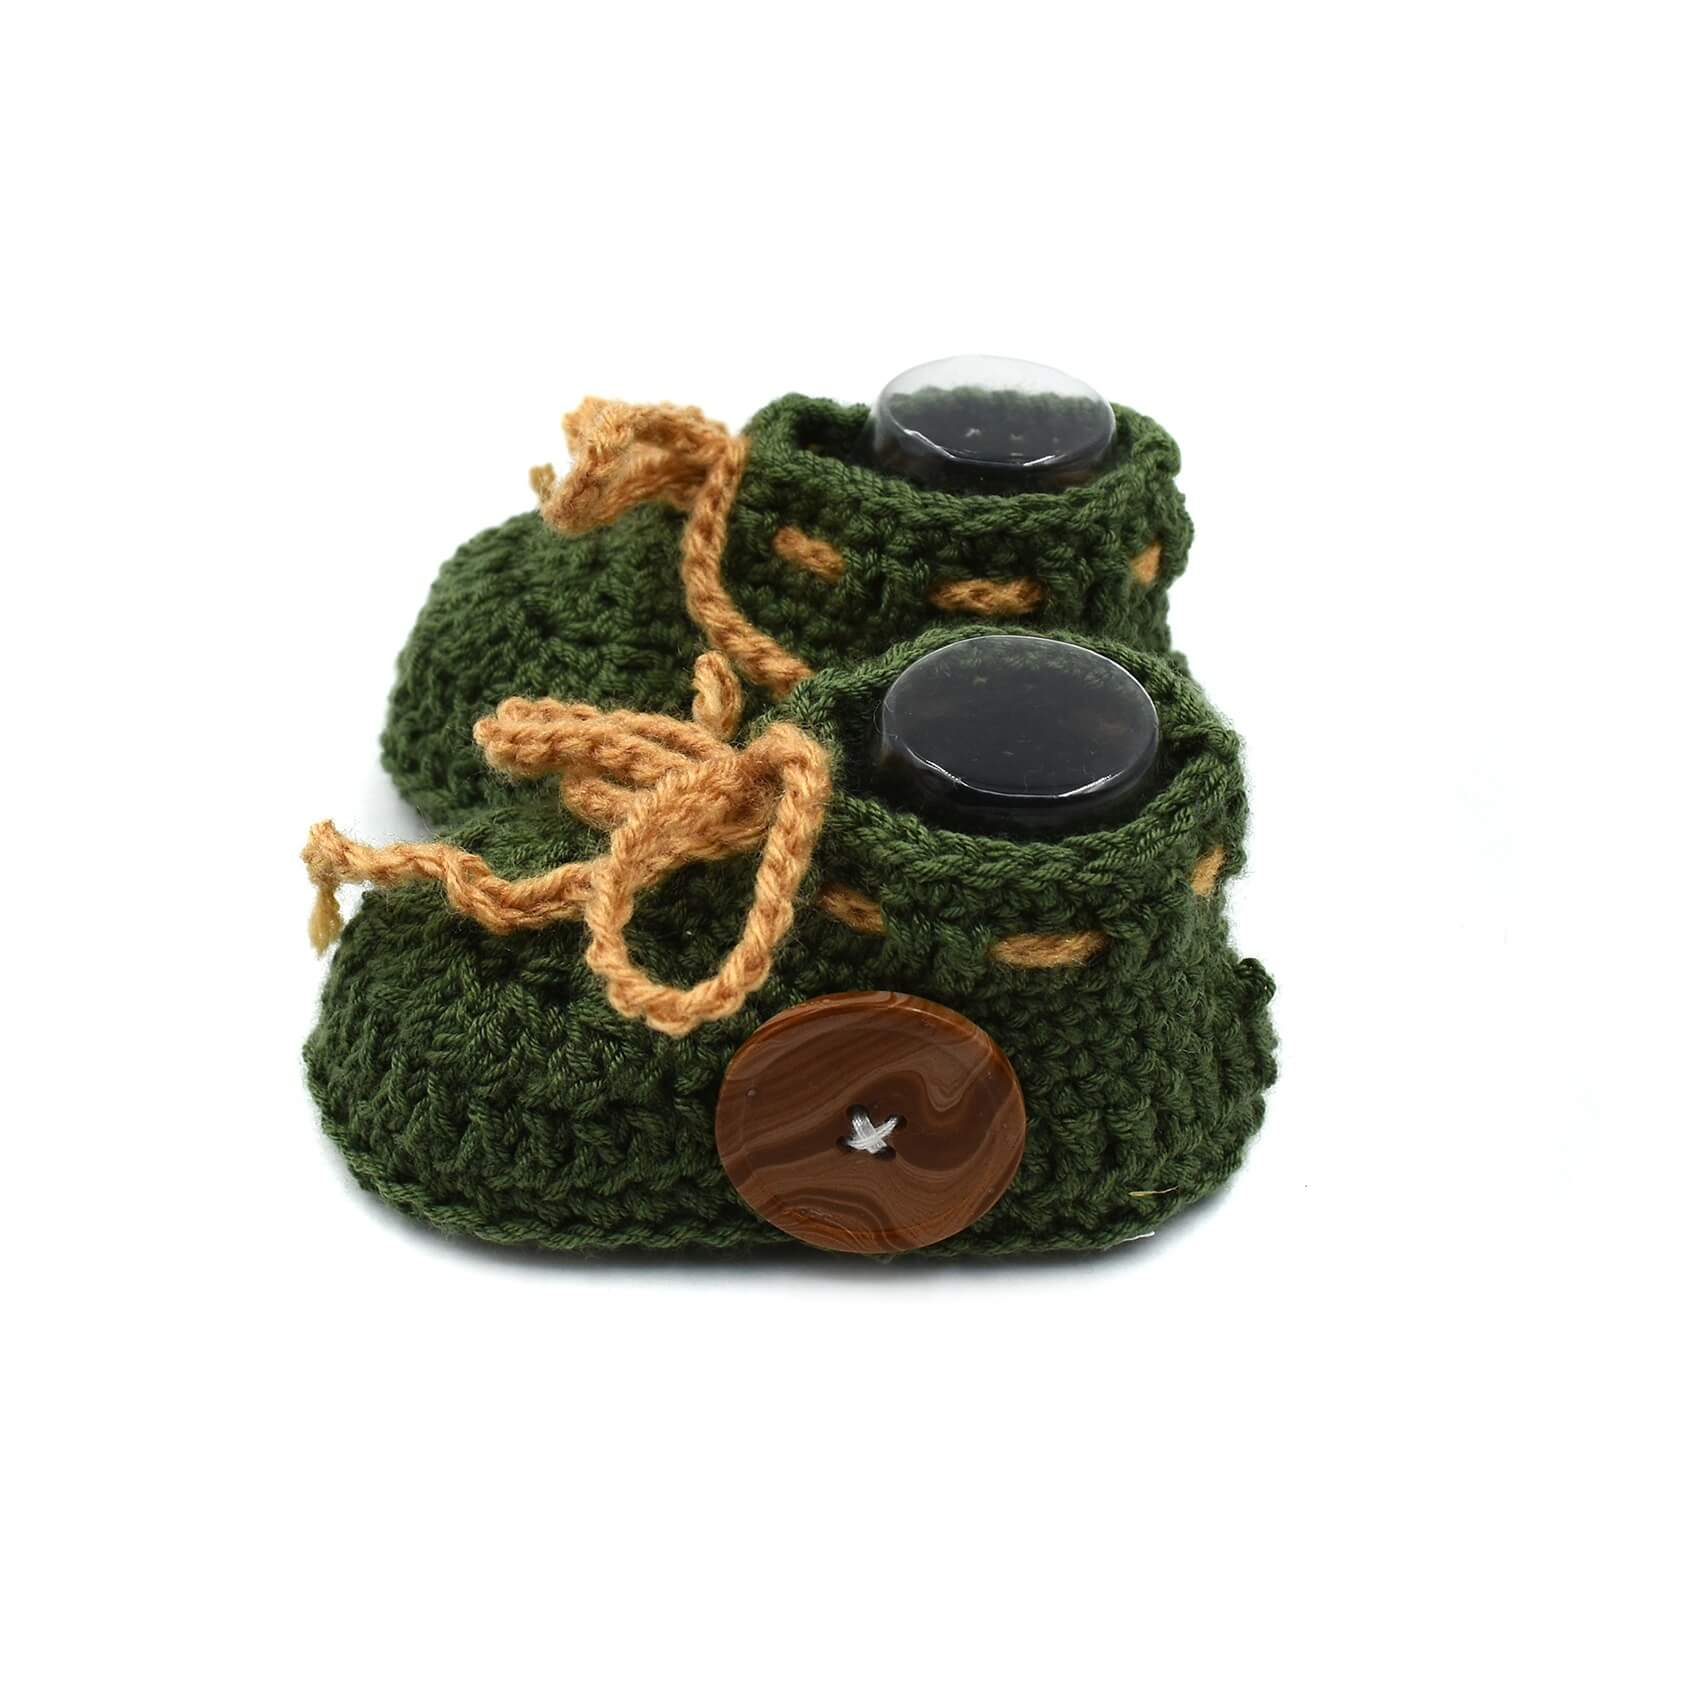 092b0430074df Ankle Baby Boots with Buttons & Lace - Military Green